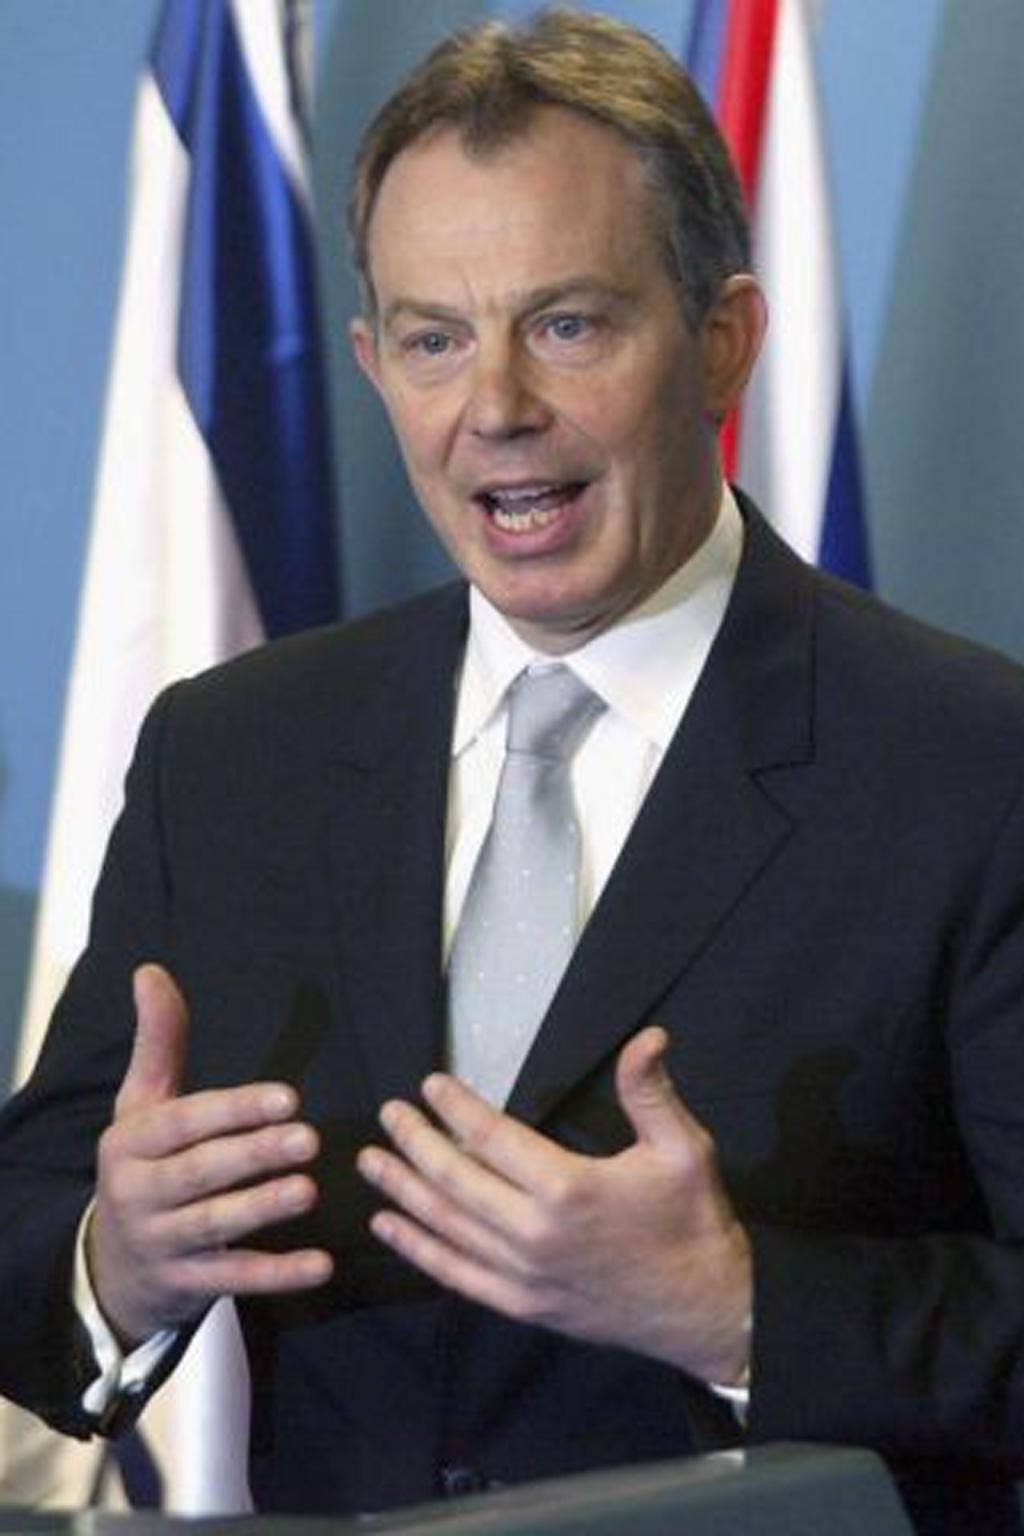 Tony Blair said that without intervention, Mali risks becoming a 'terrorist state'